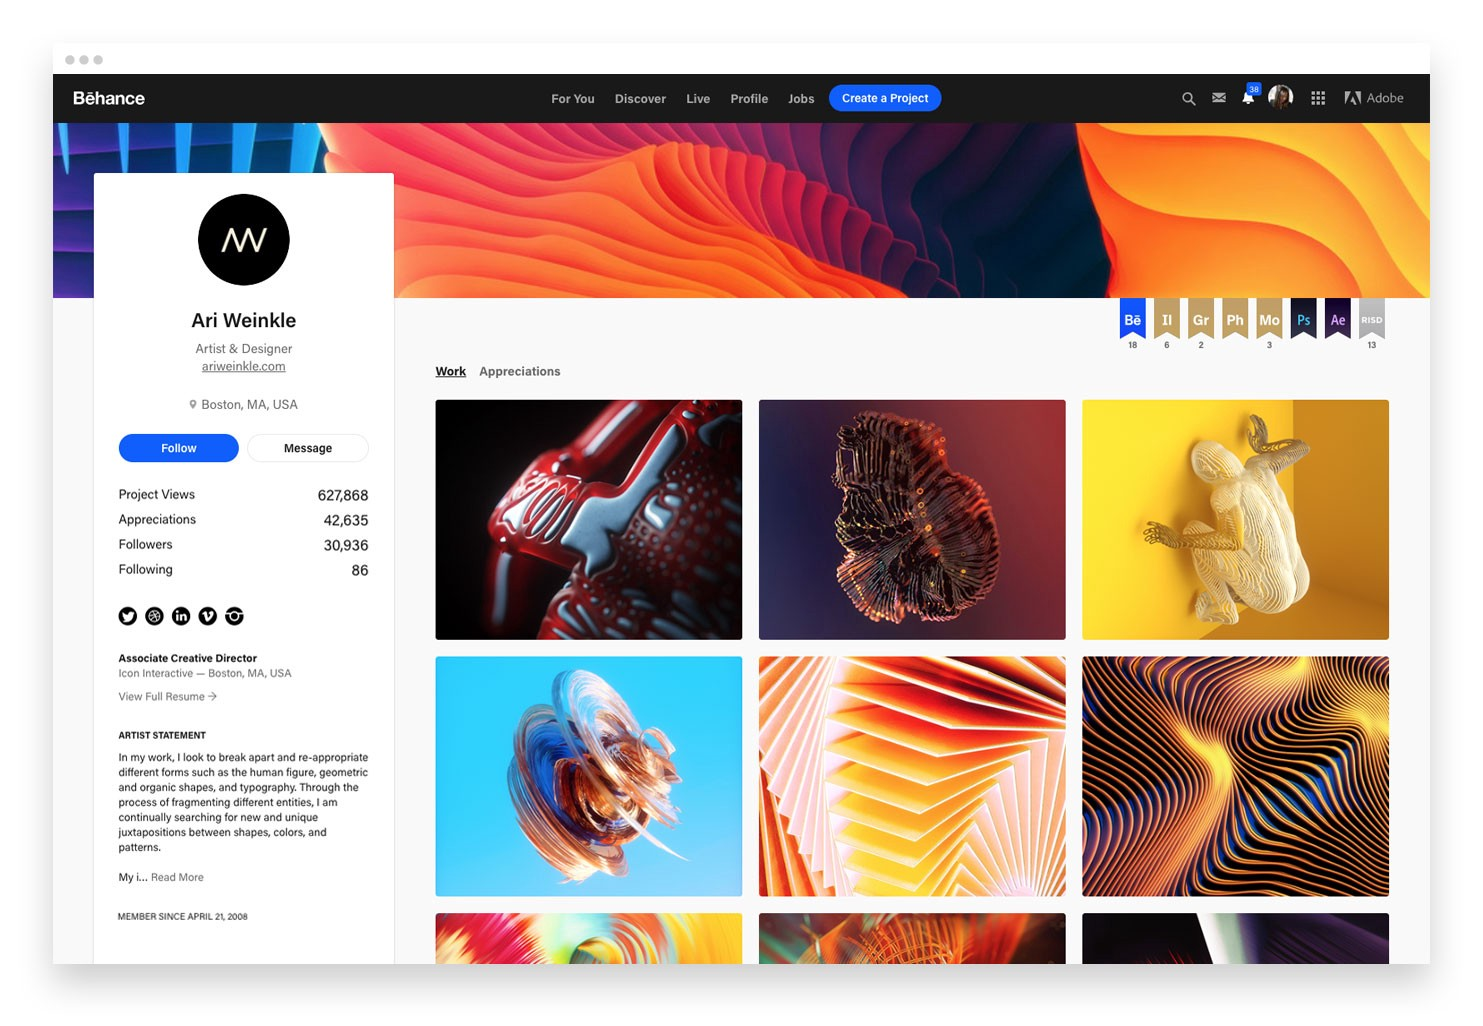 New Year, New Behance Profile and Project Page